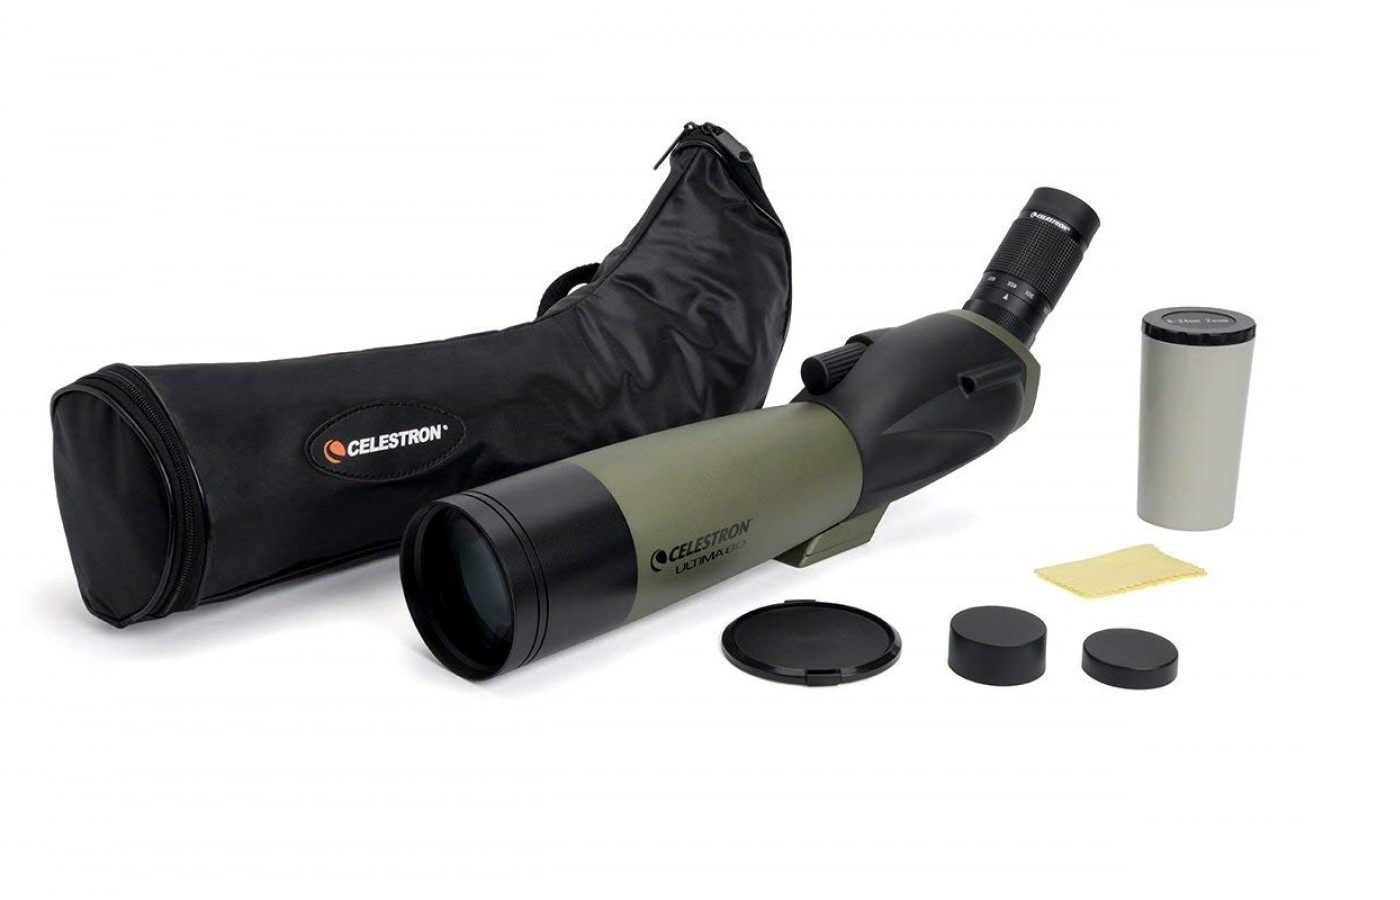 The Celestron Ultima 80 comes with protective accessories including eye covers and a soft carrying case.